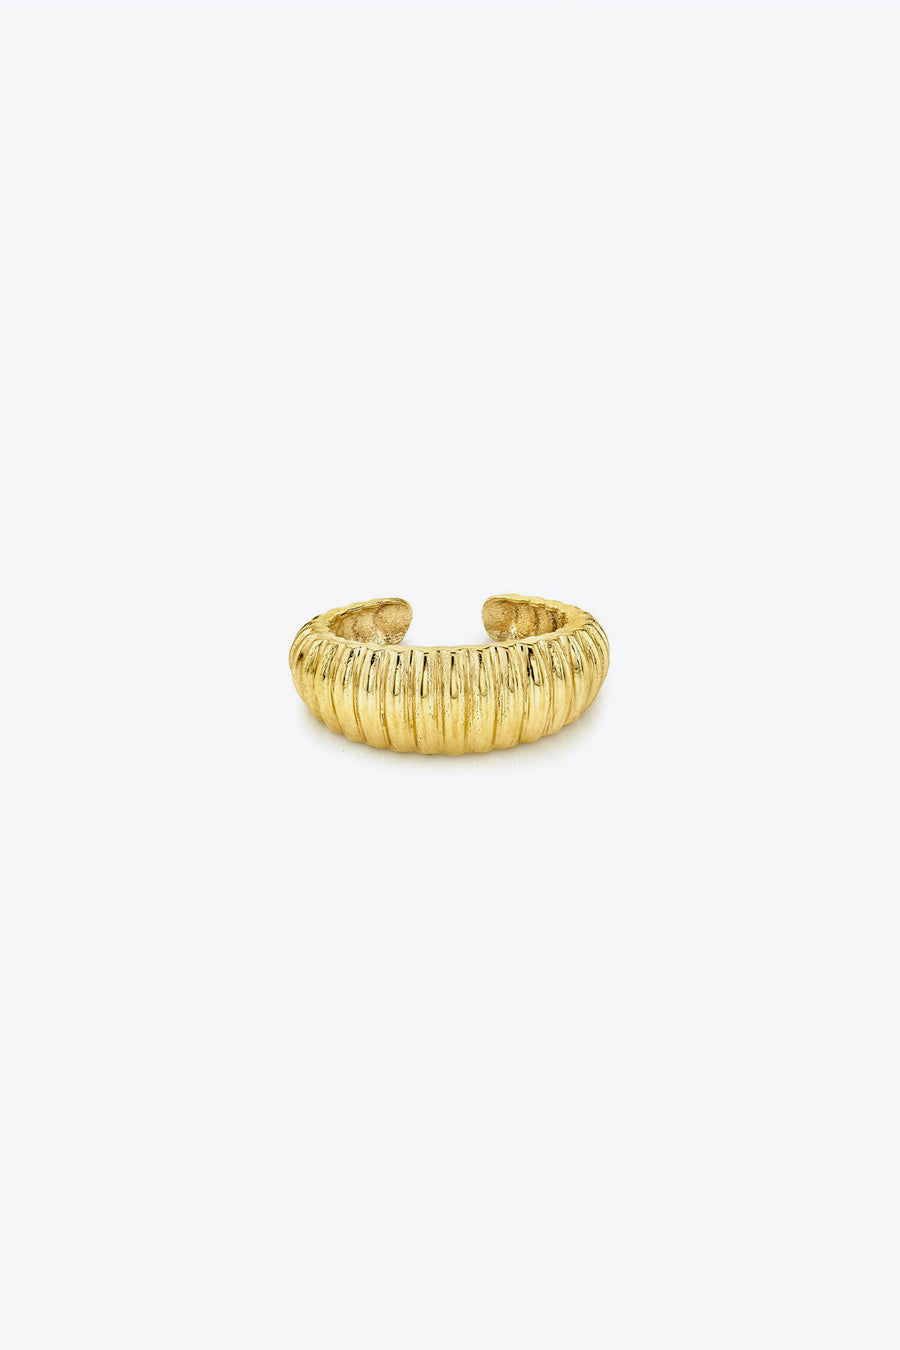 LATTICE EAR CUFF / YELLOW GOLD PLATE